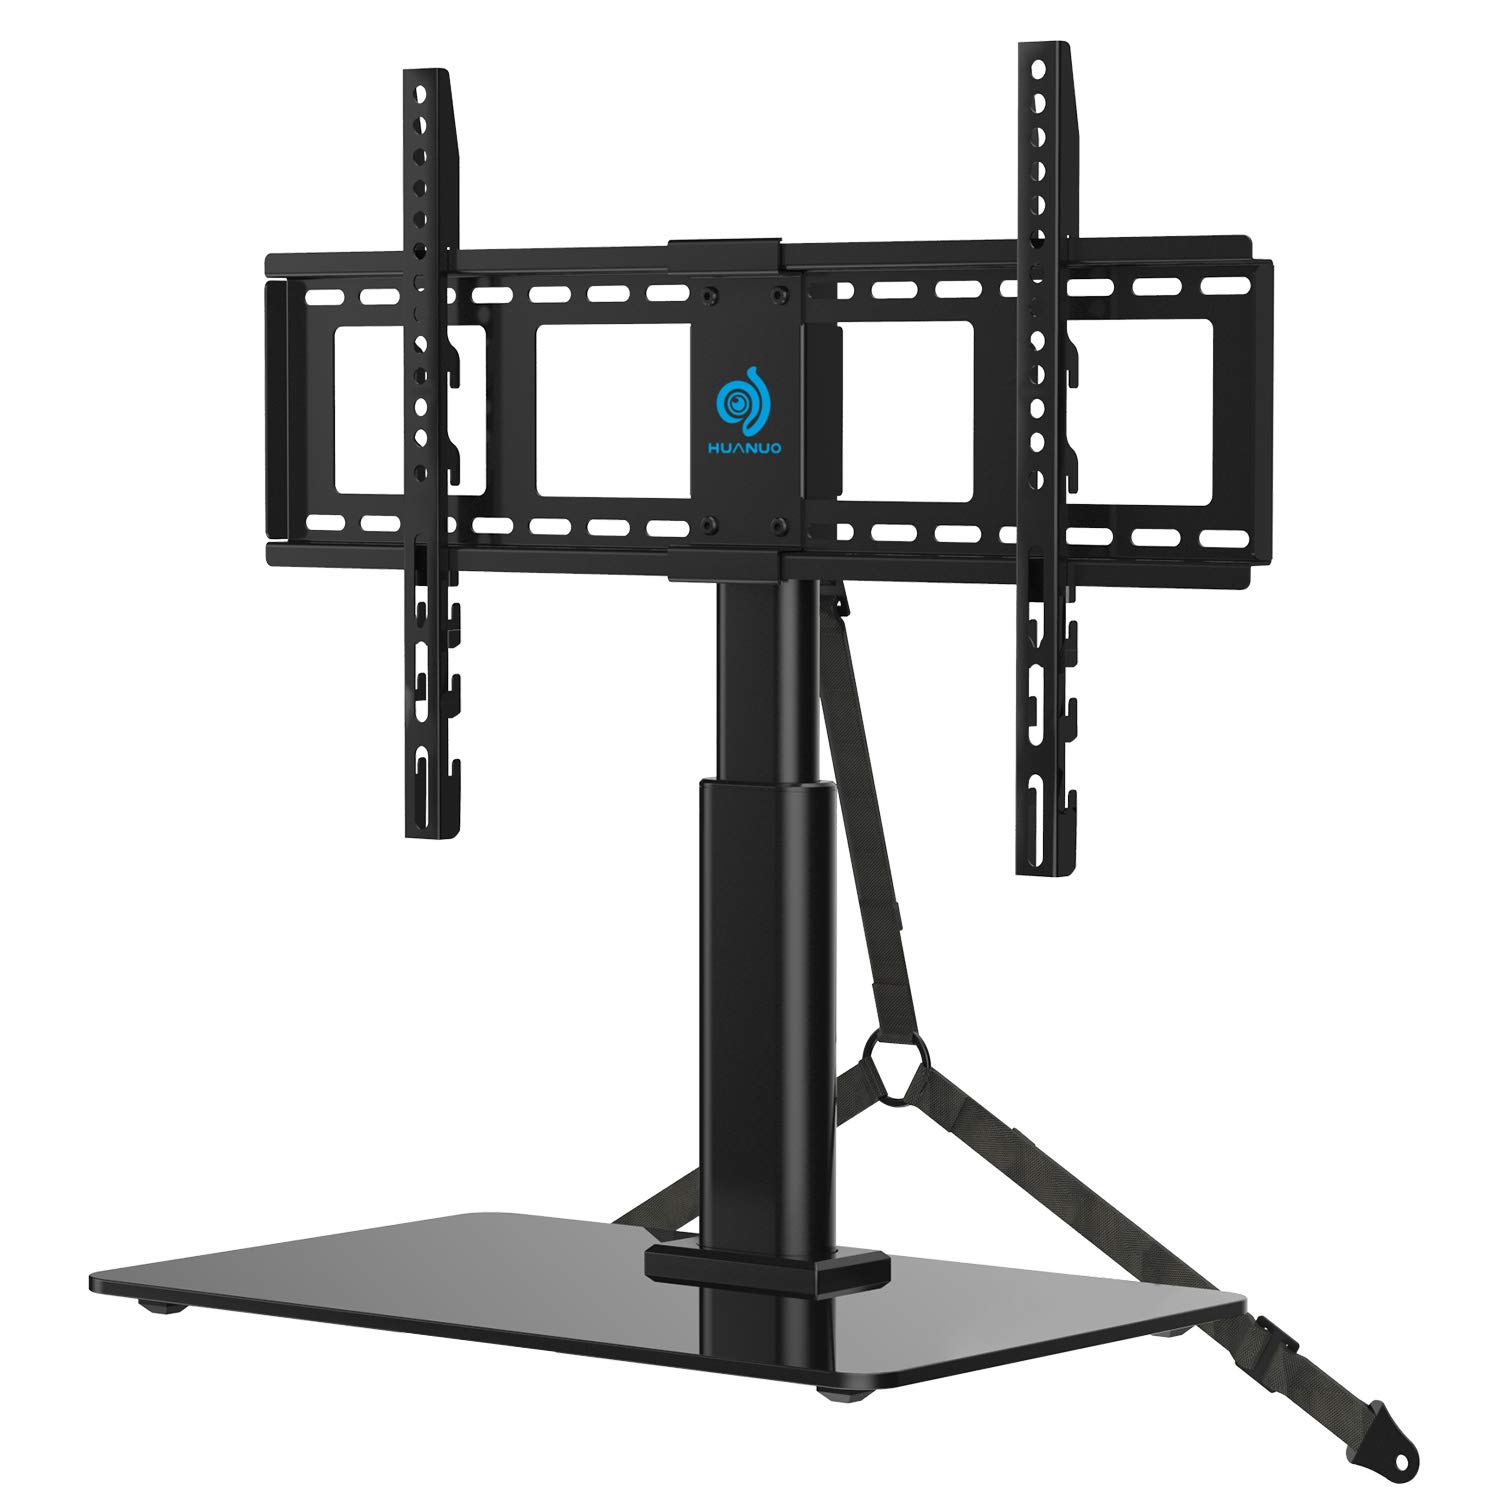 HUANUO Universal Tabletop TV Stand Holder for 32 to 60 Inch Flat Screen Television with 70 Degrees Swivel, 4 Height Adjustments, Anti-Tip Strap, Tempered Glass Base, VESA up to 600x400, Black by HUANUO